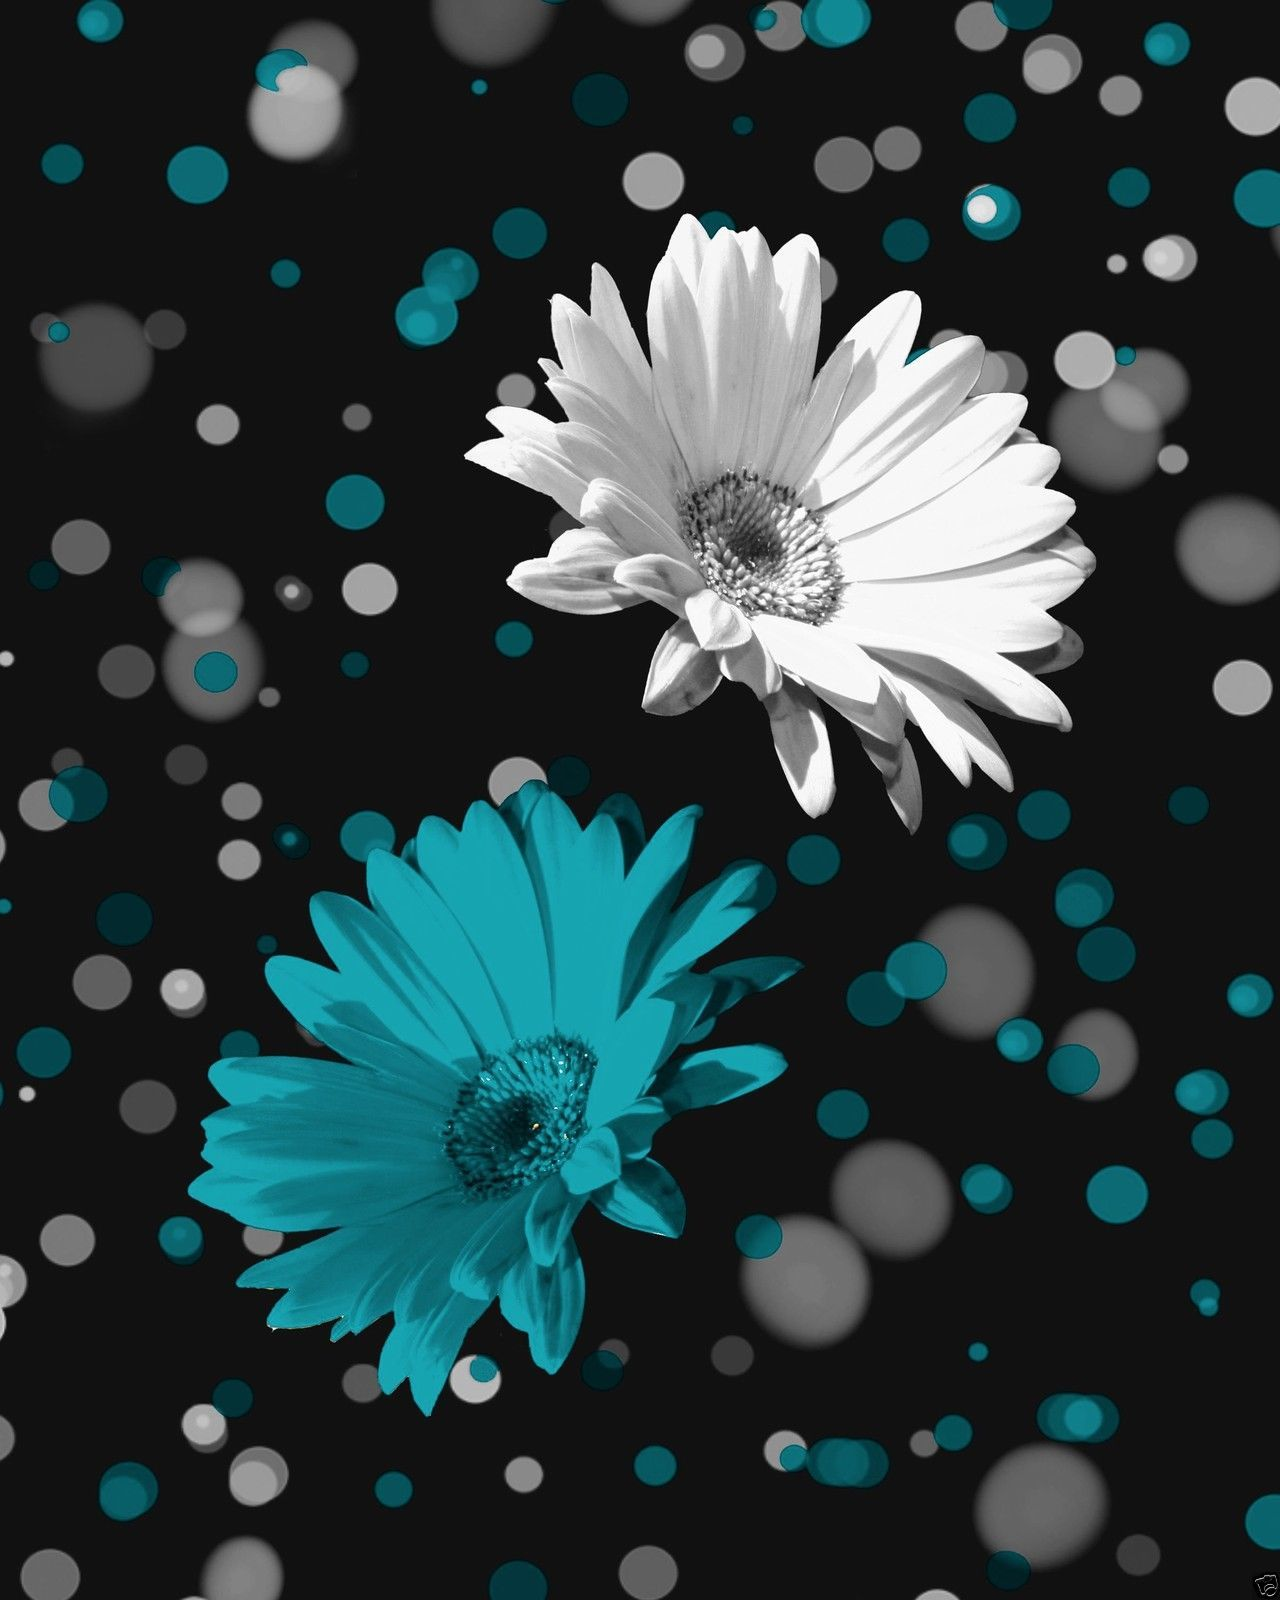 Black White Teal Daisy Flowers Wall Art Home Decor Matted Picture